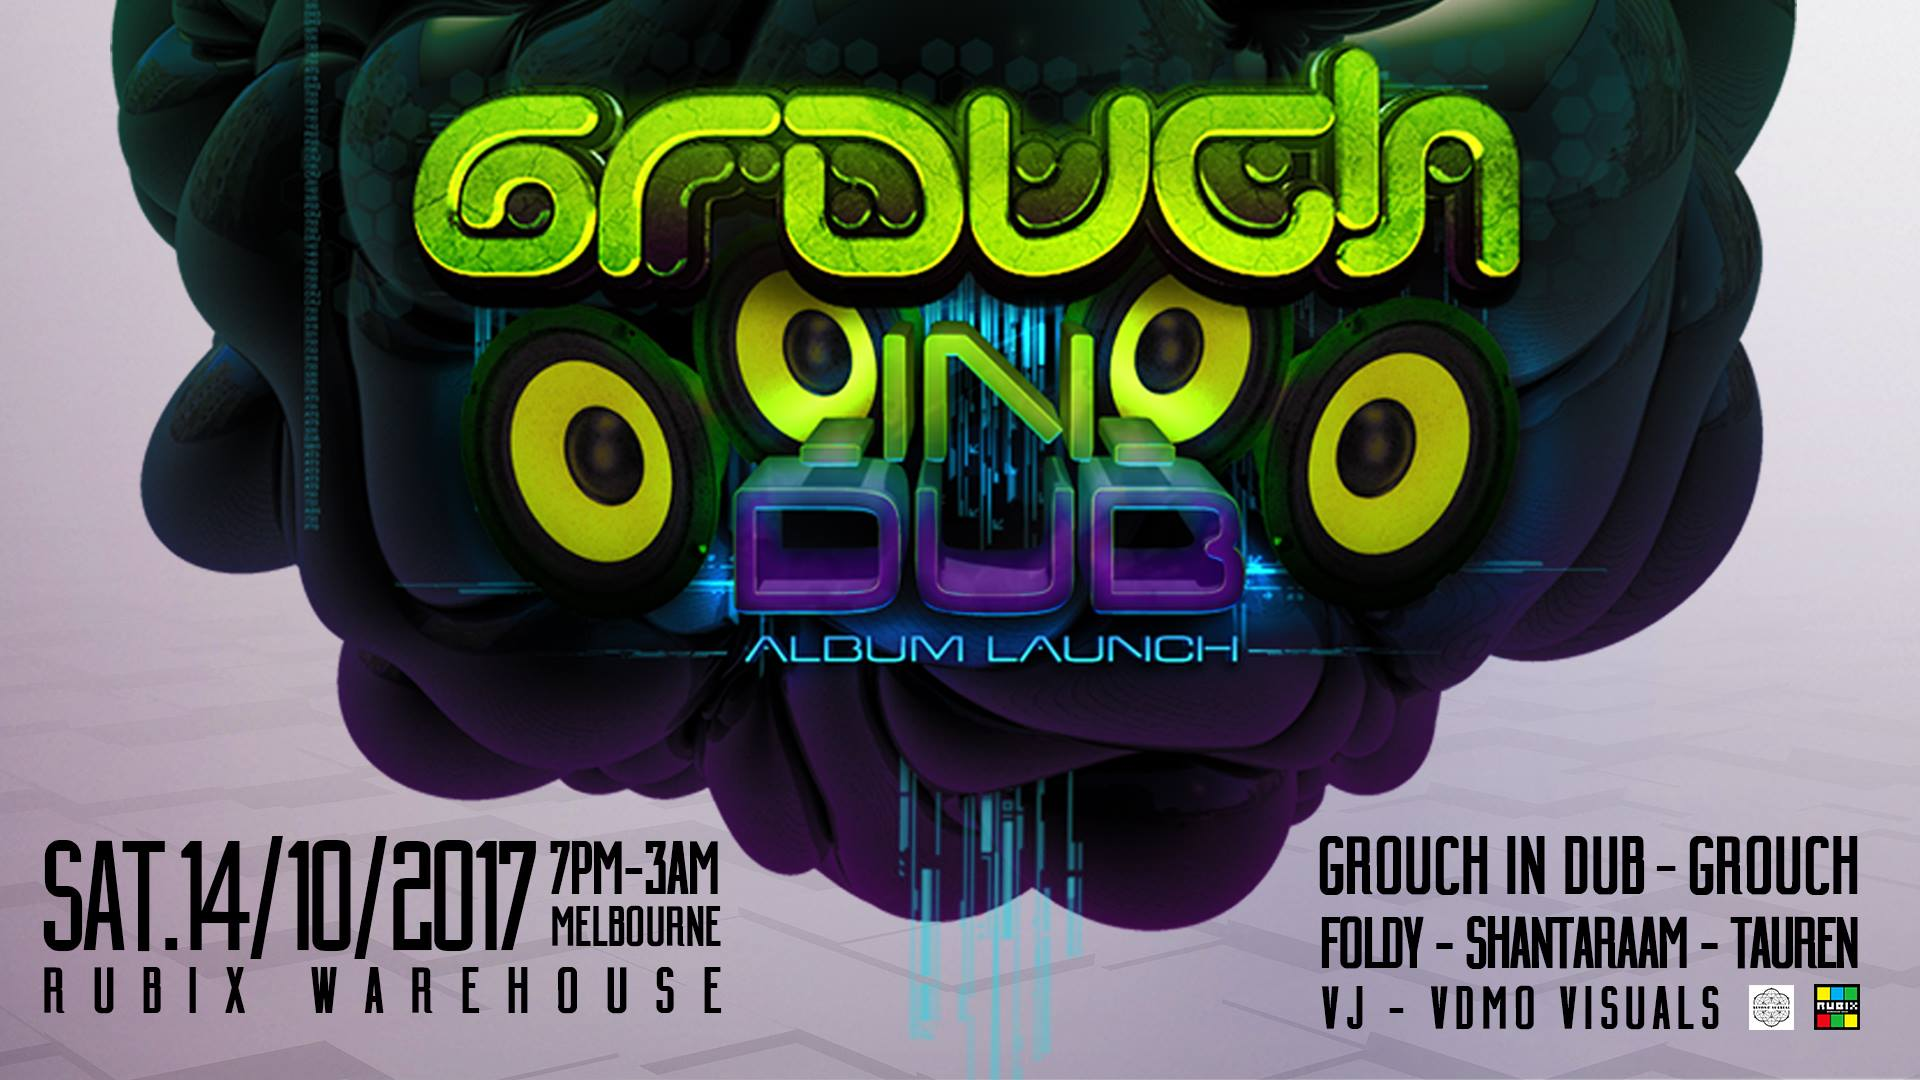 Grouch in Dub - Album Launch : 14th October 2017